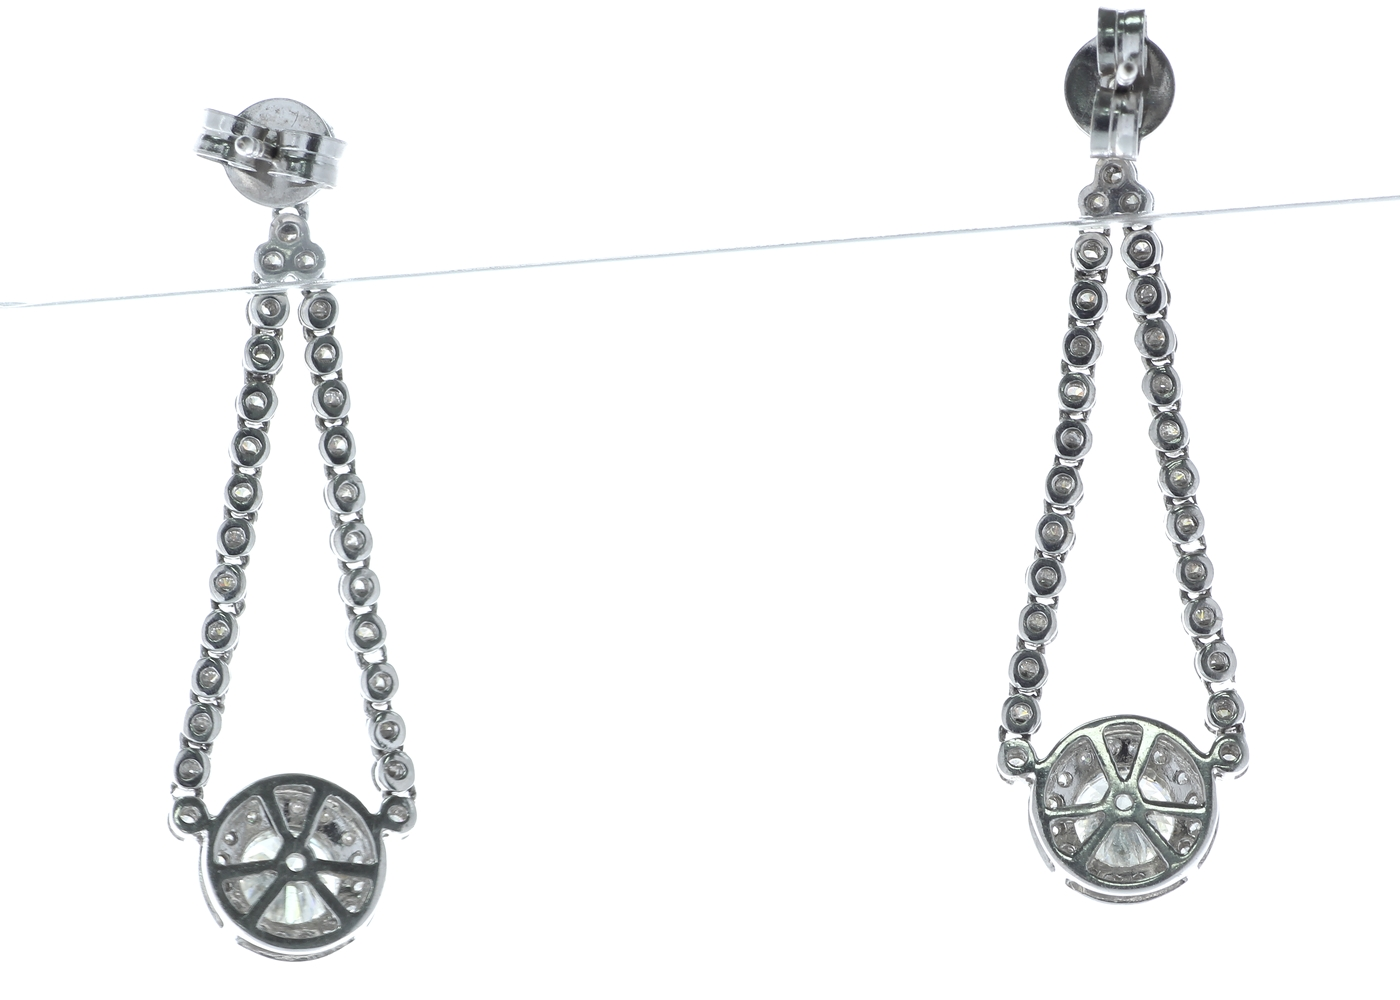 18ct White Gold Diamond Halo Drop Earrings 2.20 Carats - Image 3 of 4